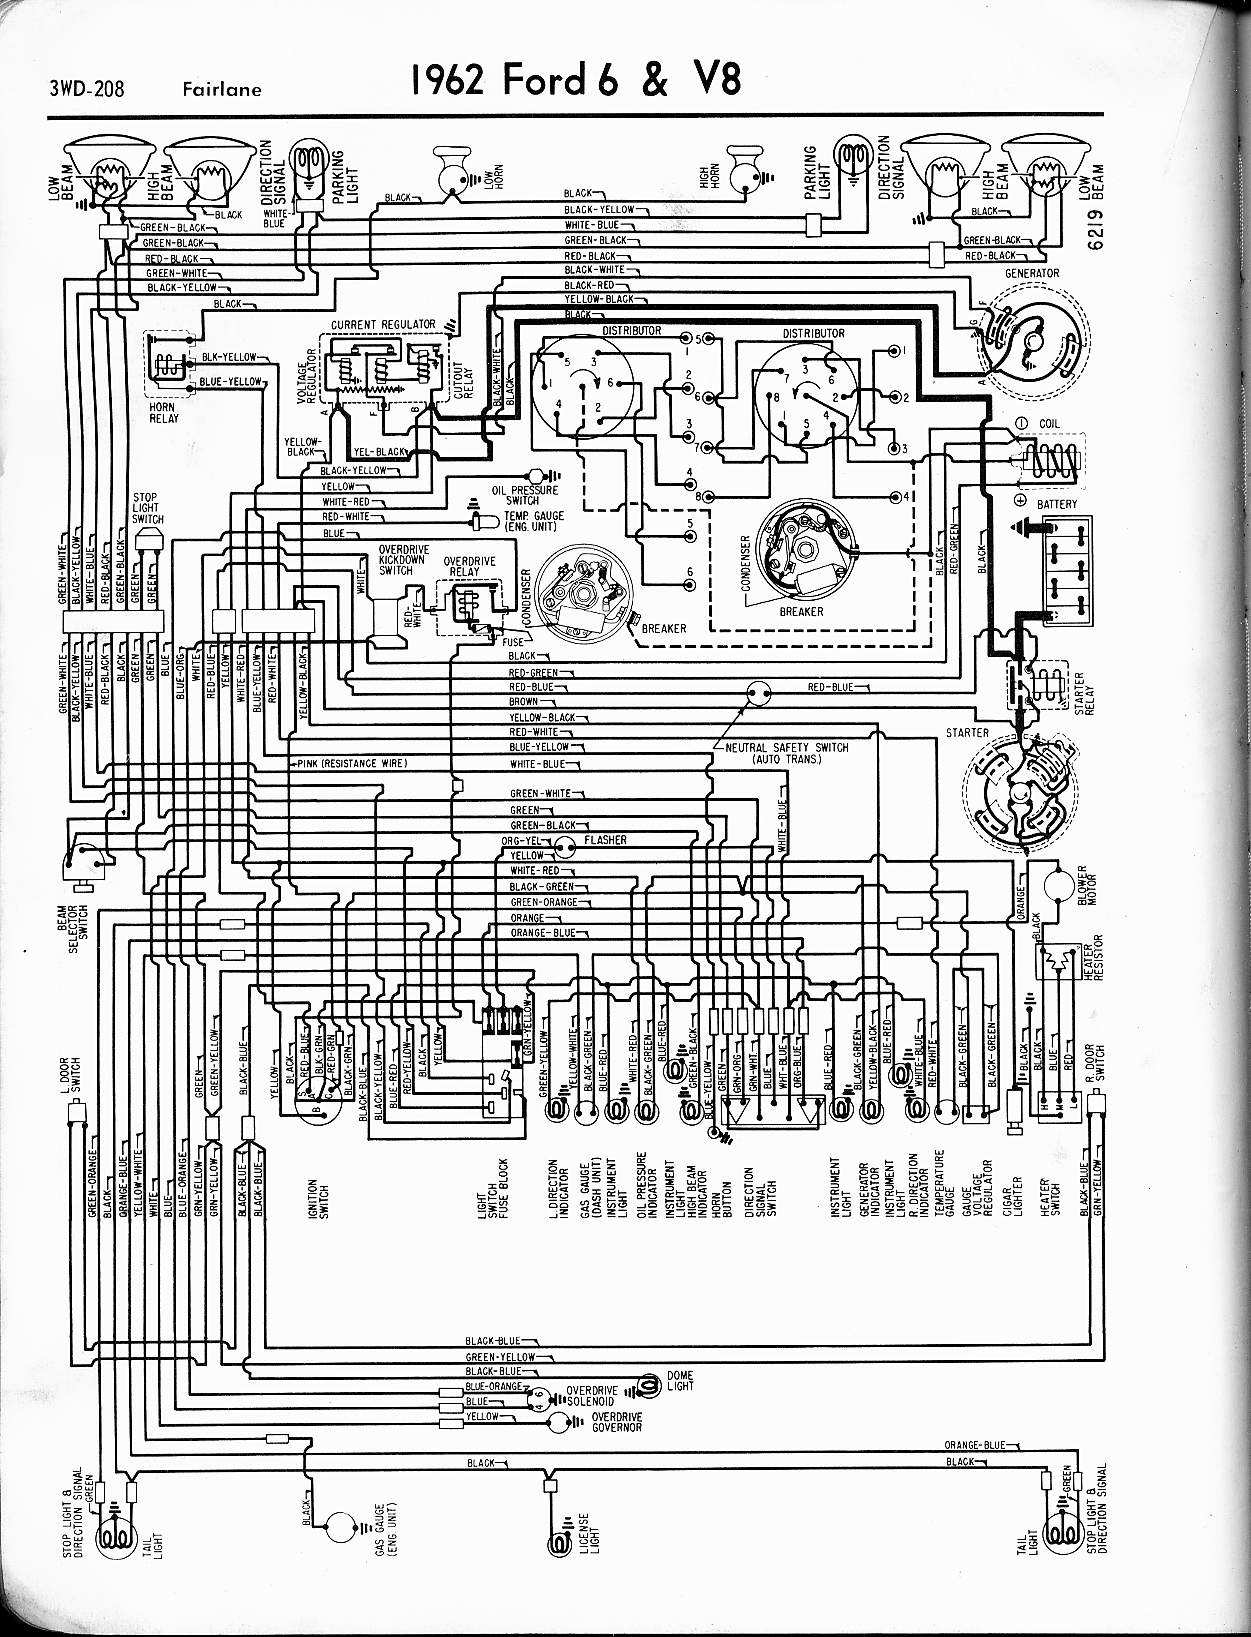 1961 Ford F100 Wiring Diagram For Color Diagrams 1967 Fairlane 1962 Opinions About 1963 F 100